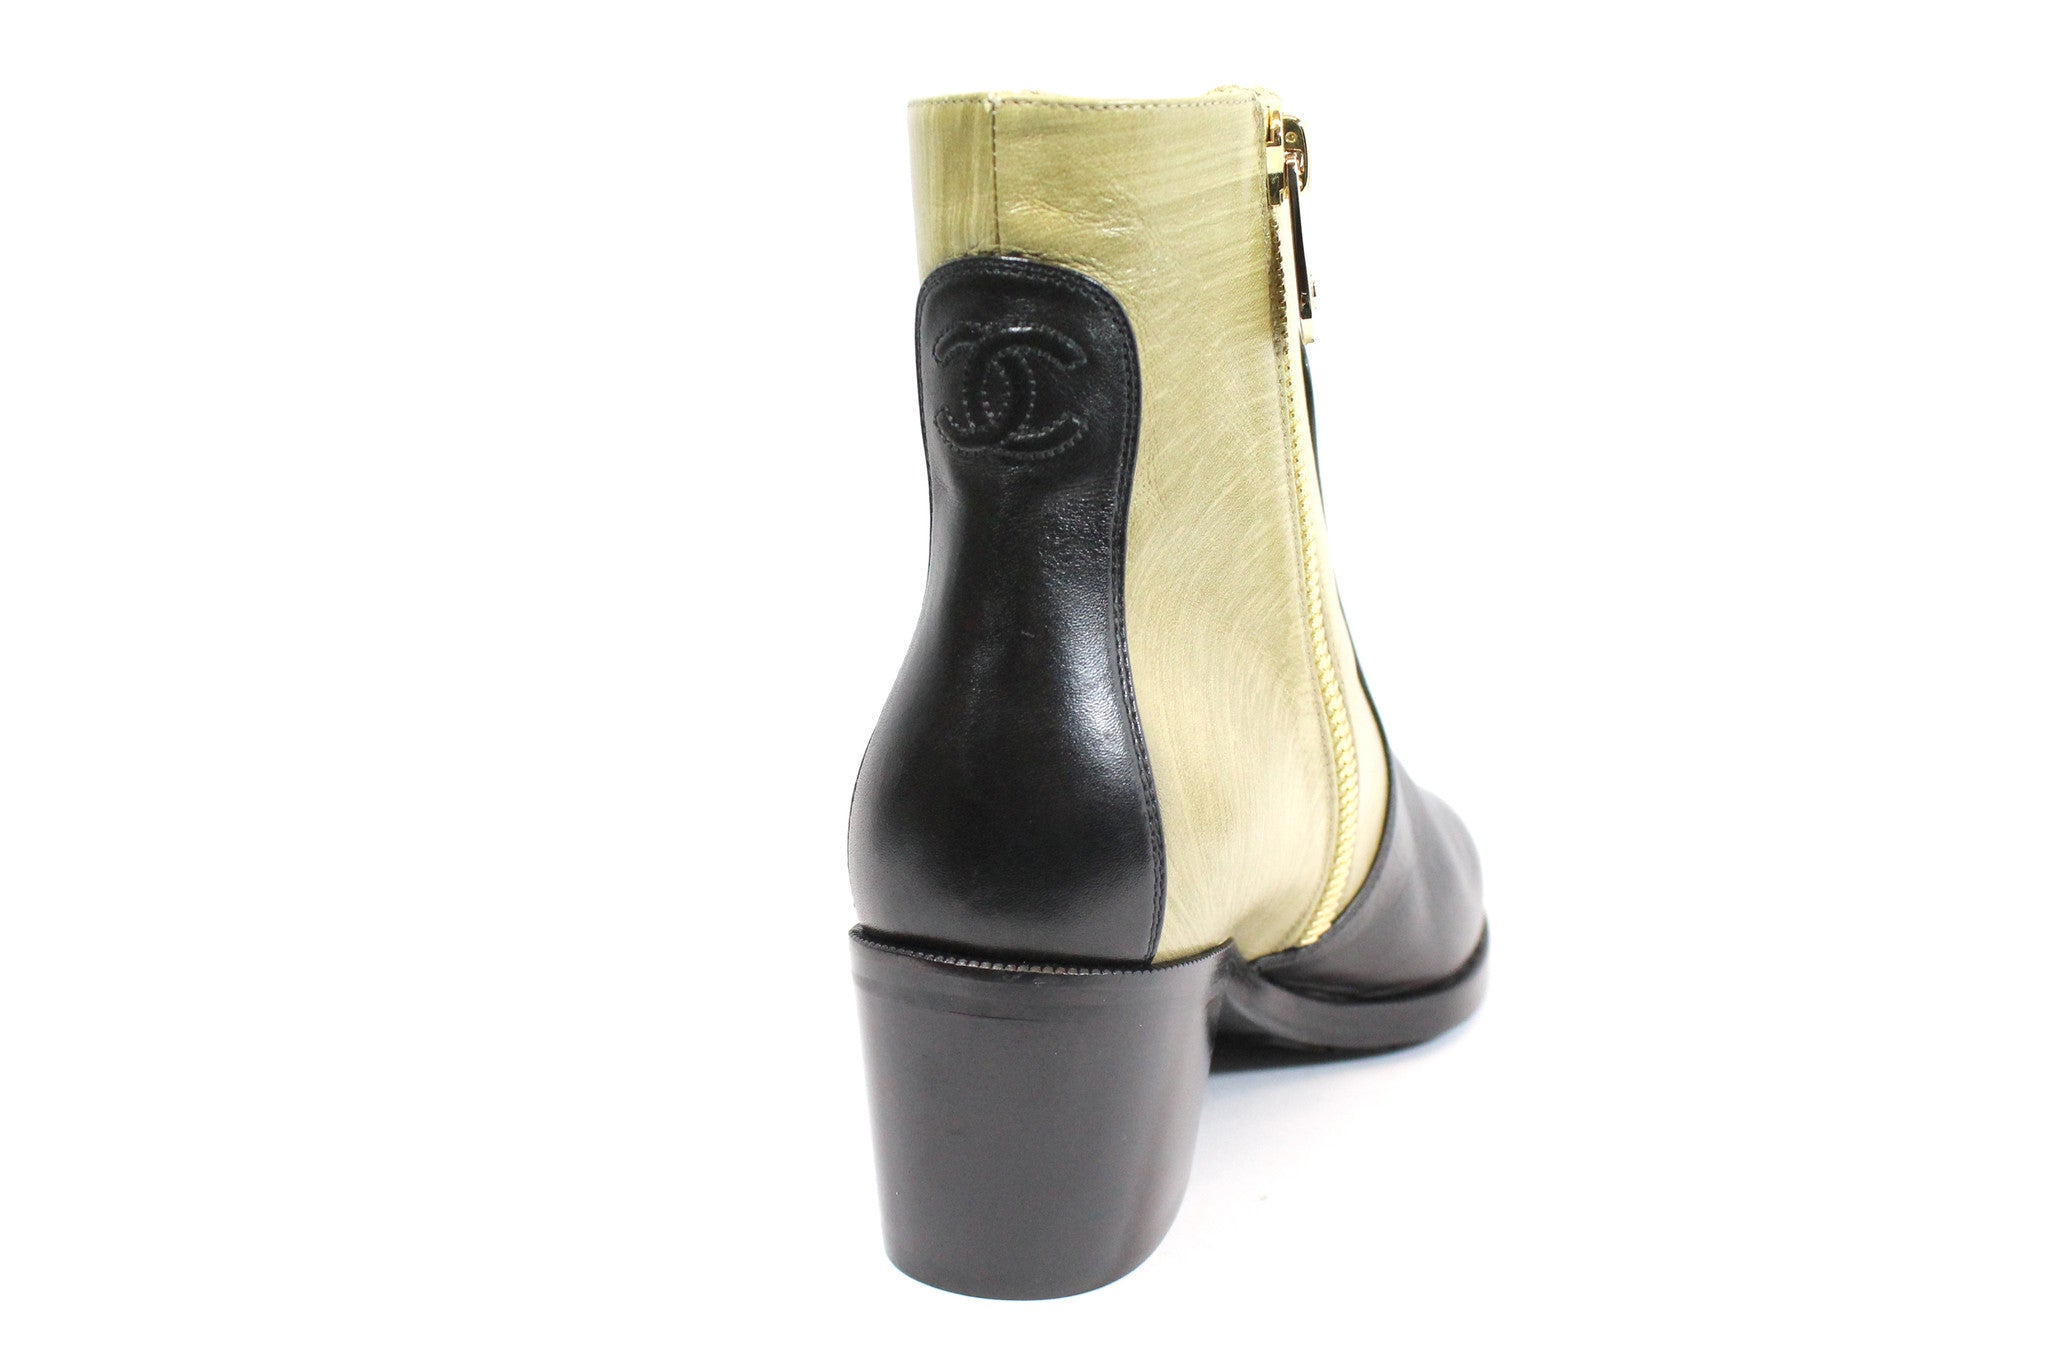 Chanel Two-tone Short Calfskin Boots (Size 38) - Encore Consignment - 4